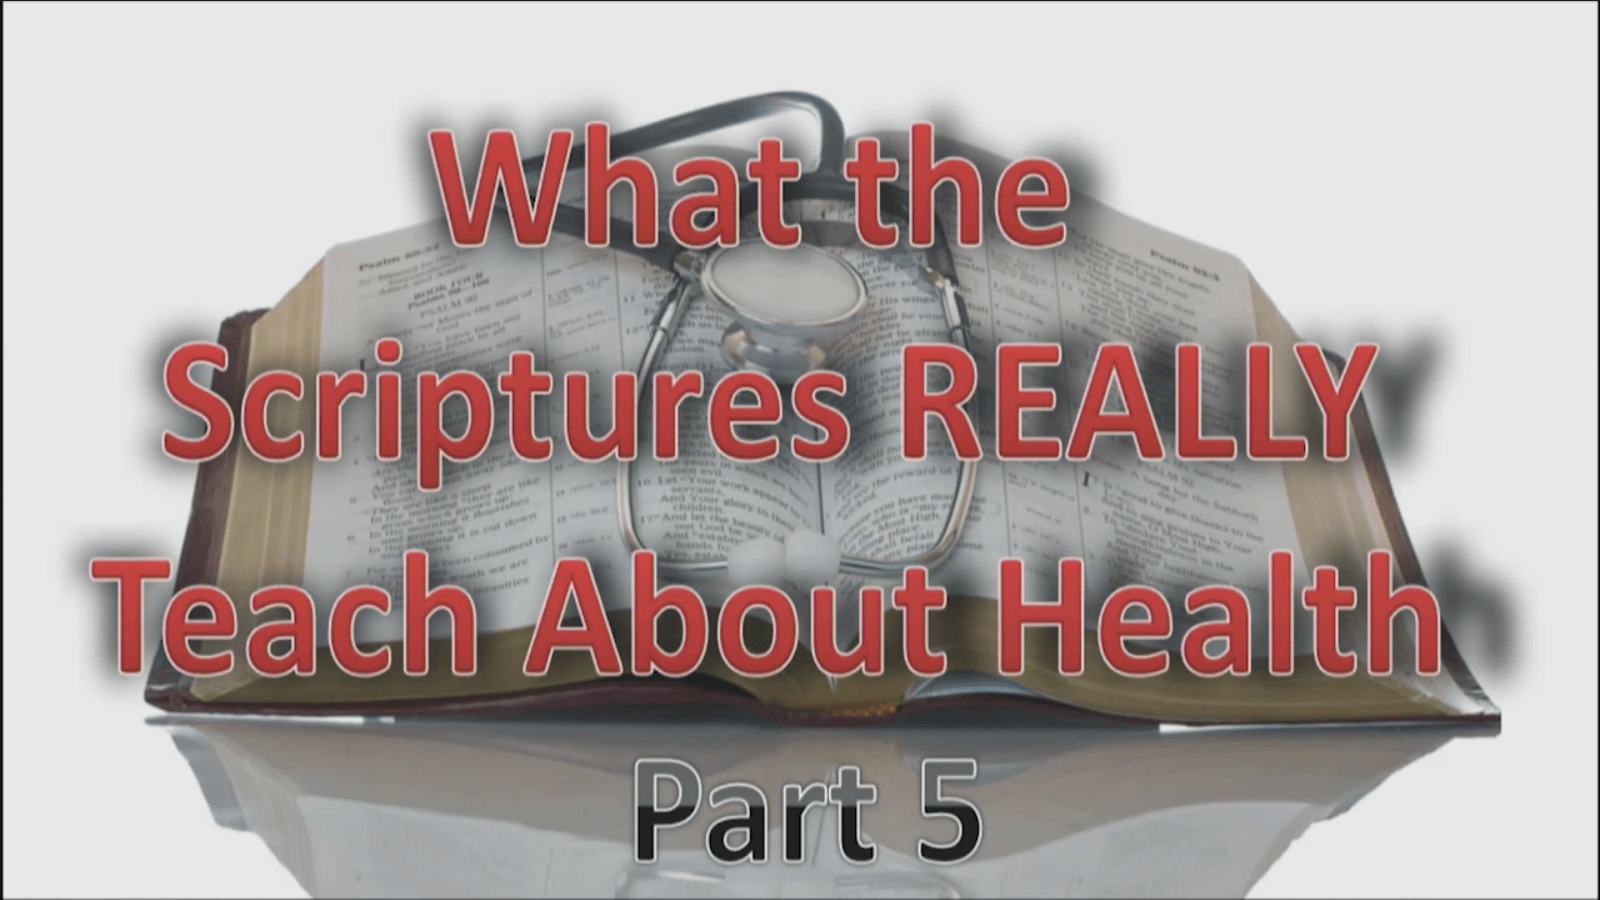 What the Scriptures REALLY Teach about Health - Part 5 - Study